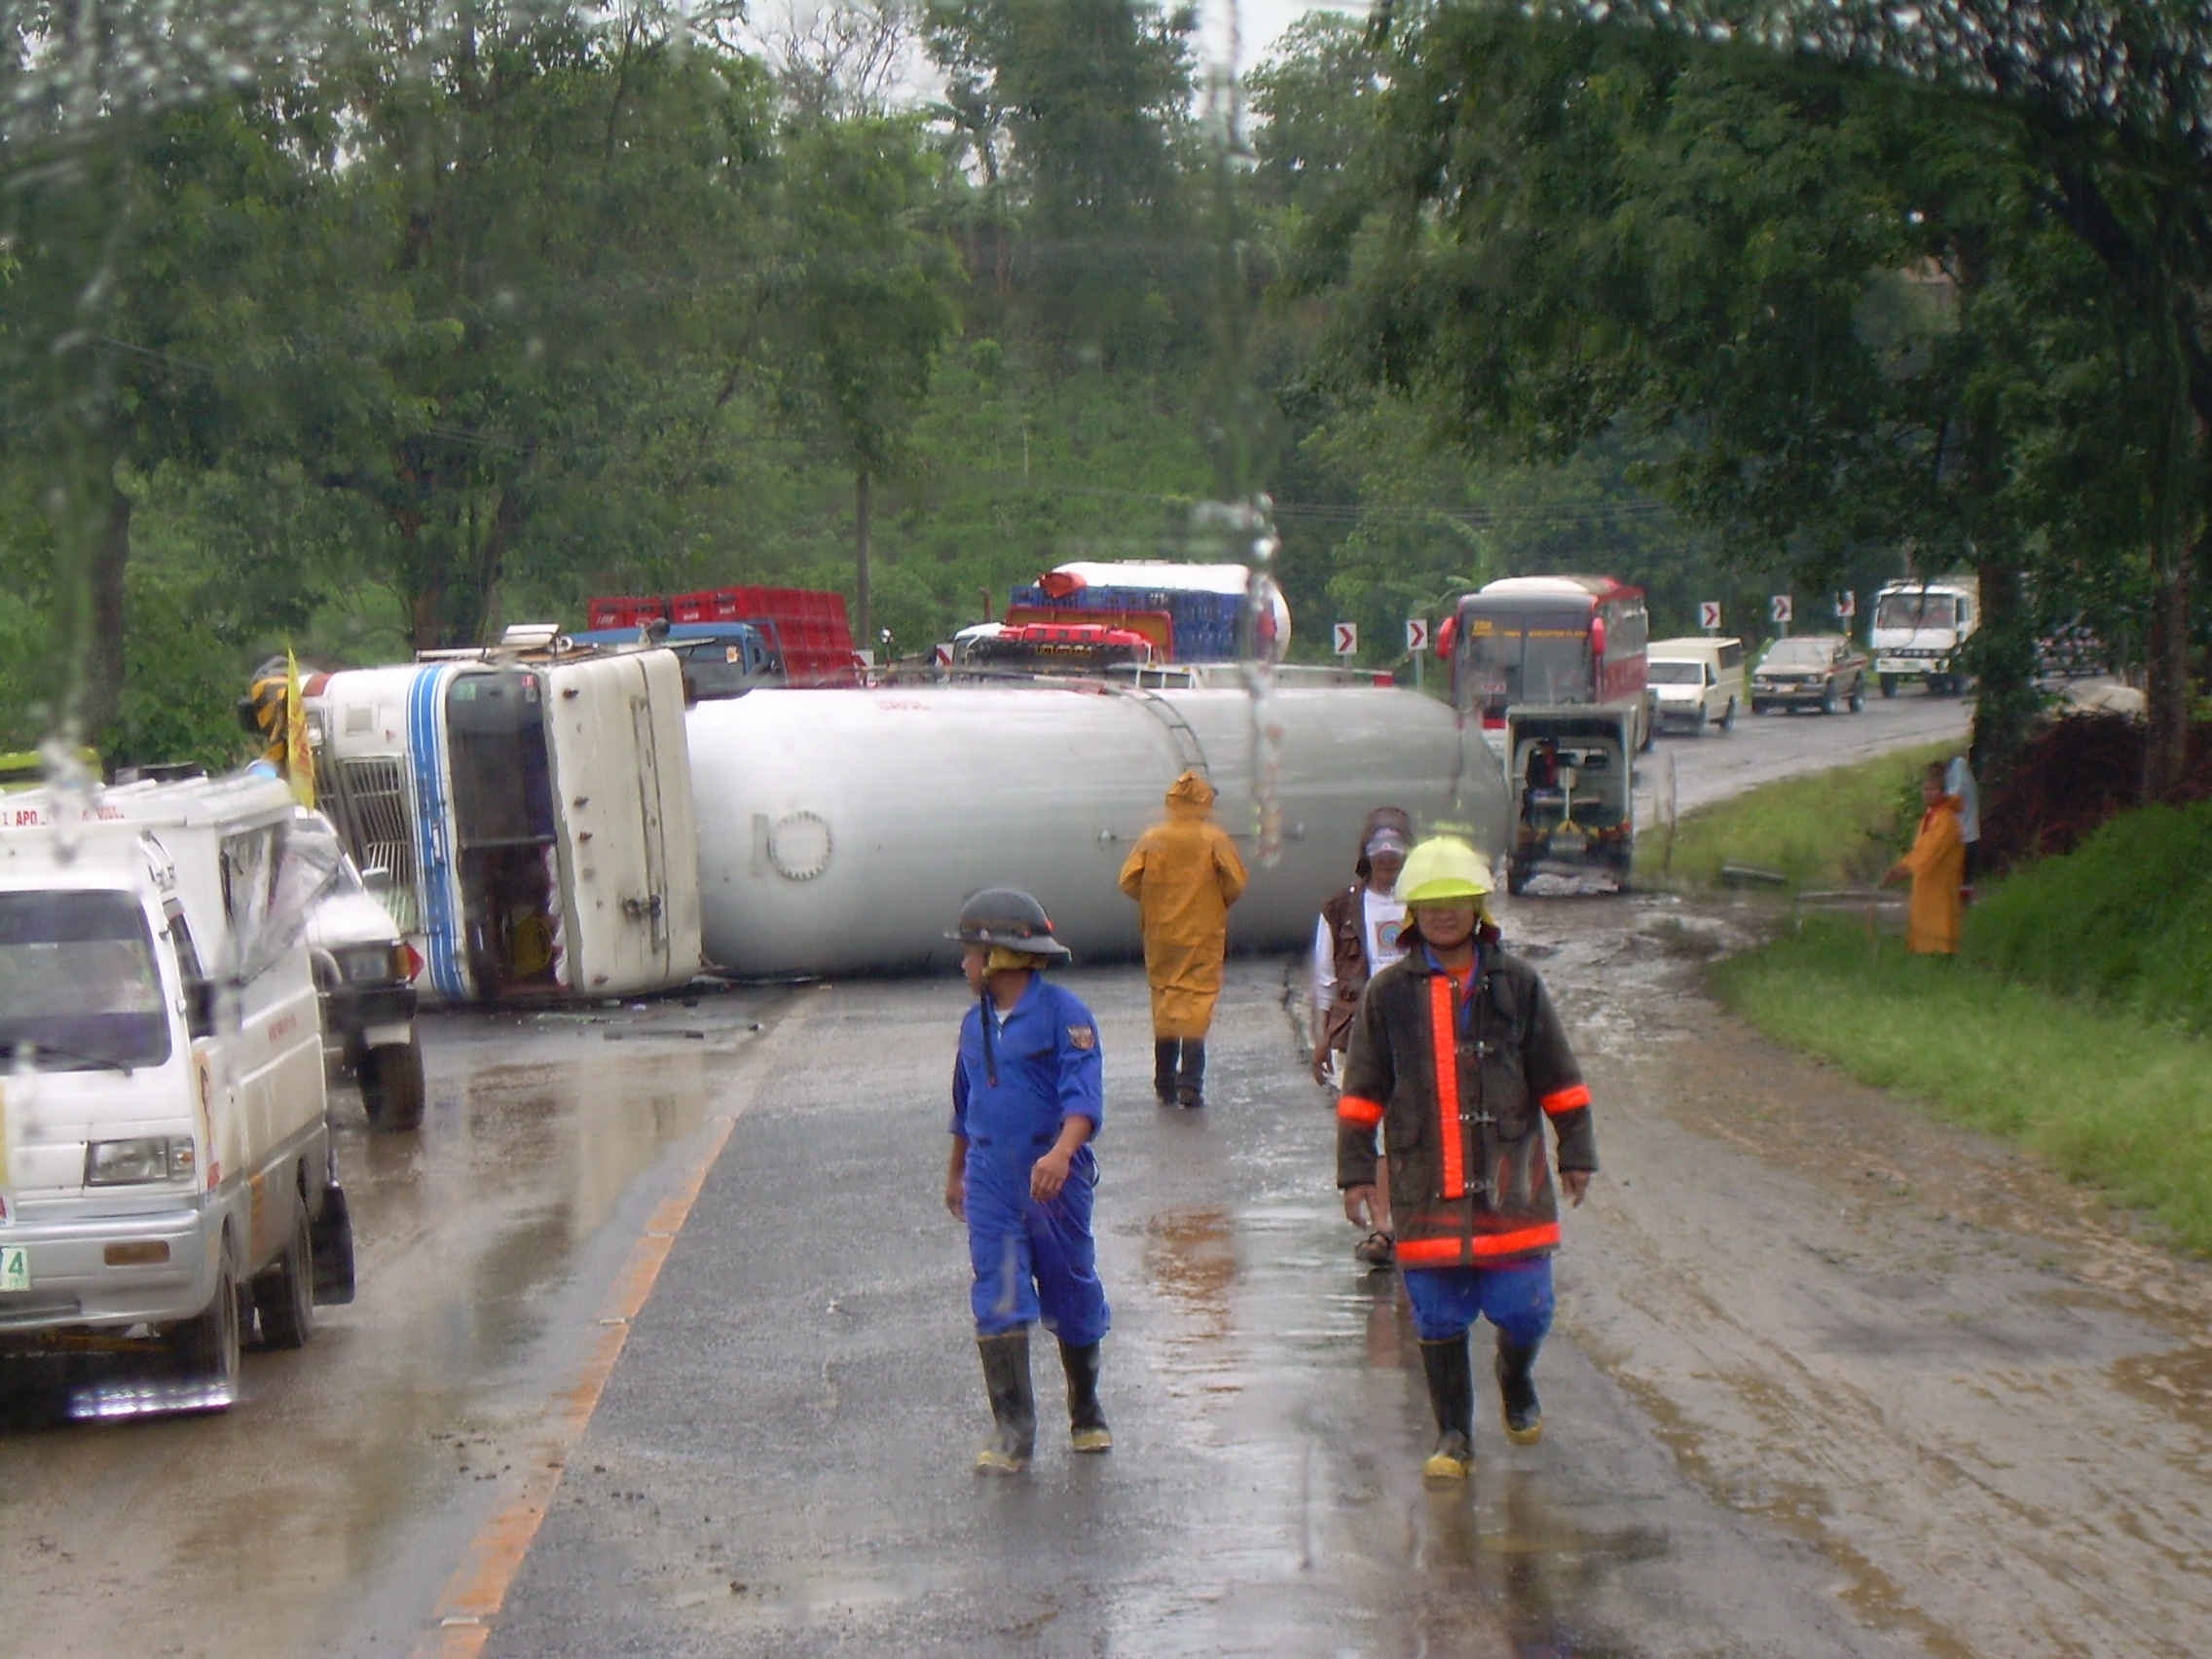 dscn1341 - LPG Truck Accident in the Philippines - Philippine Photo Gallery